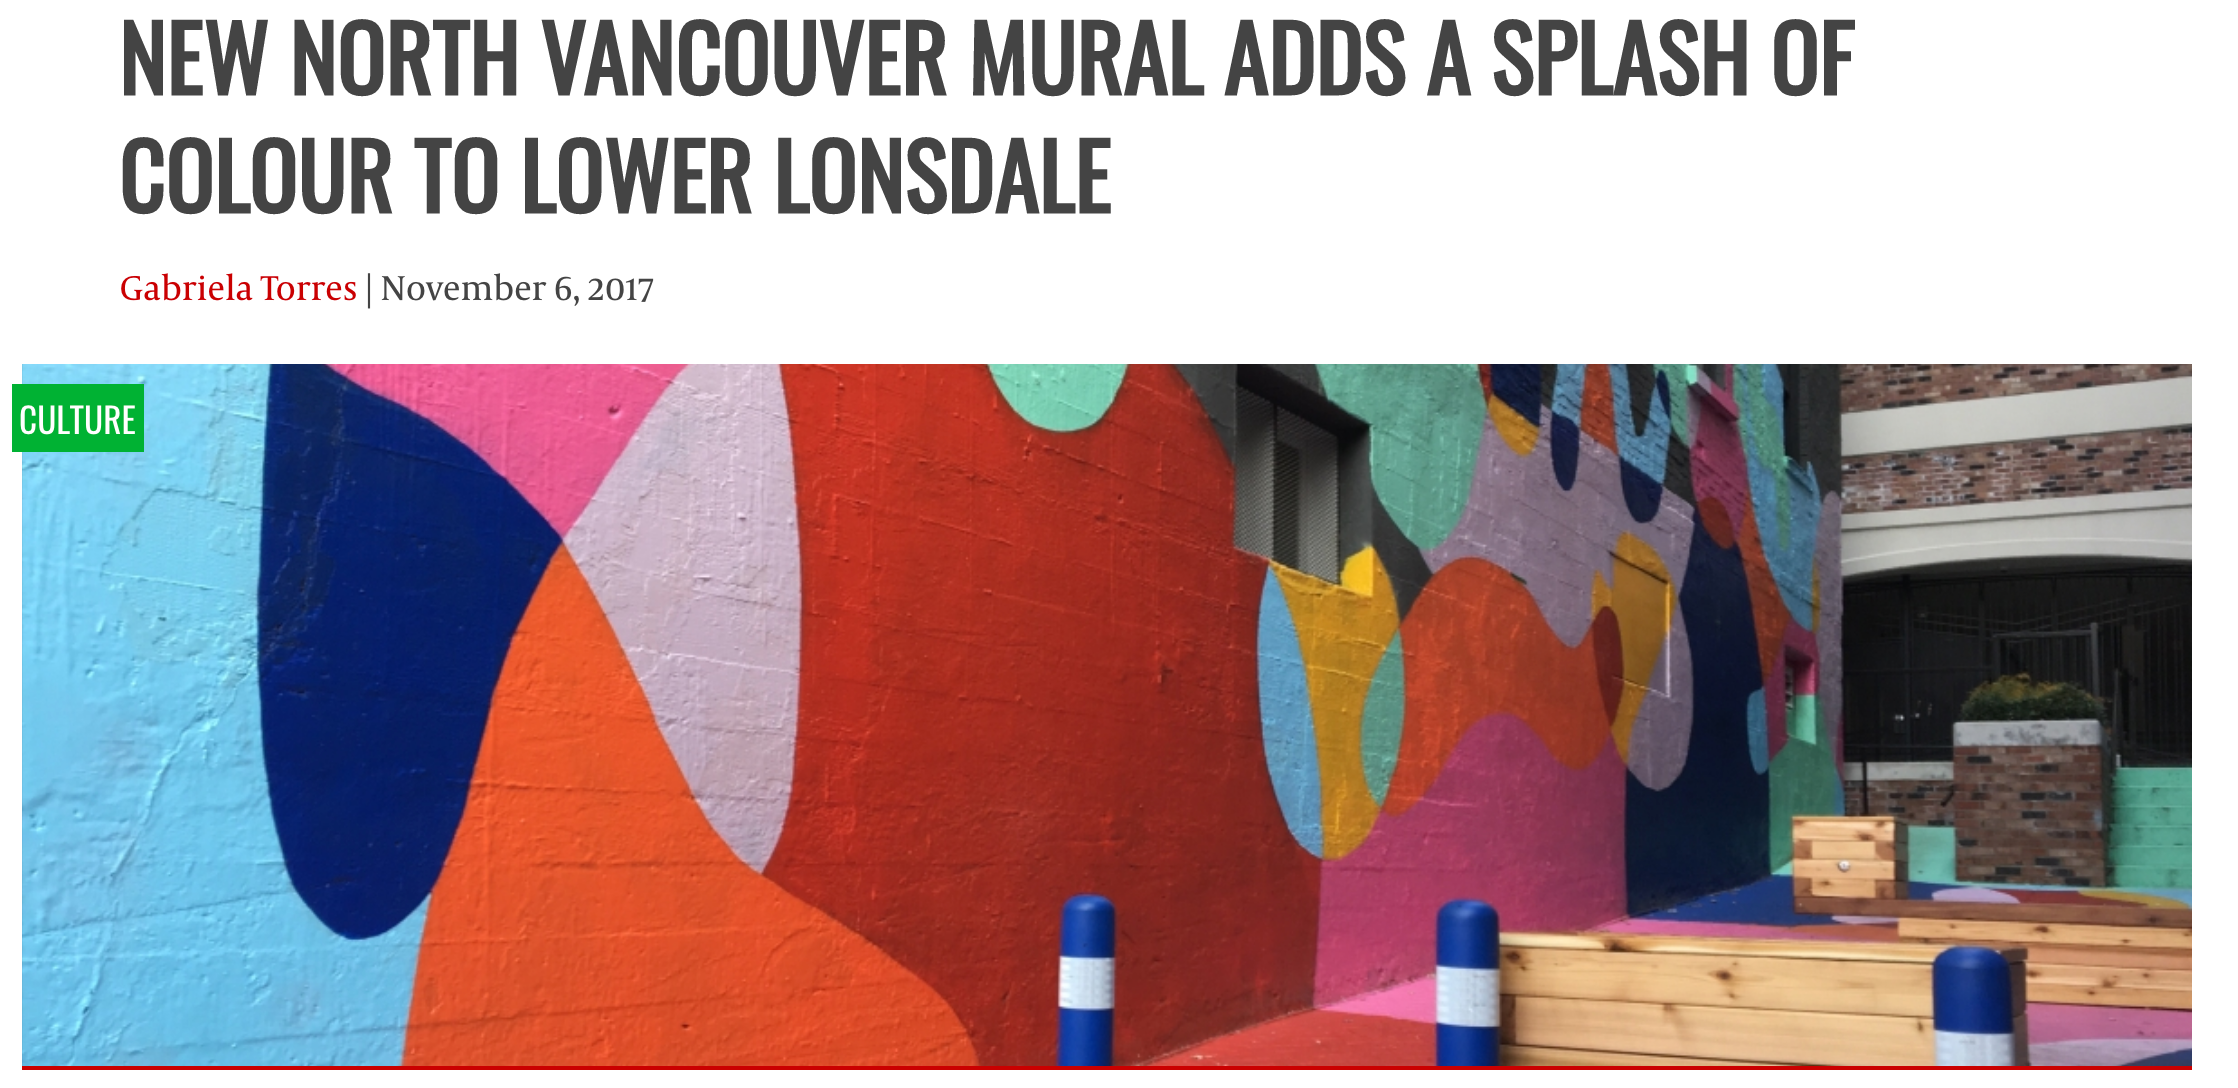 https://604now.com/north-vancouver-mural-brightens-fall/